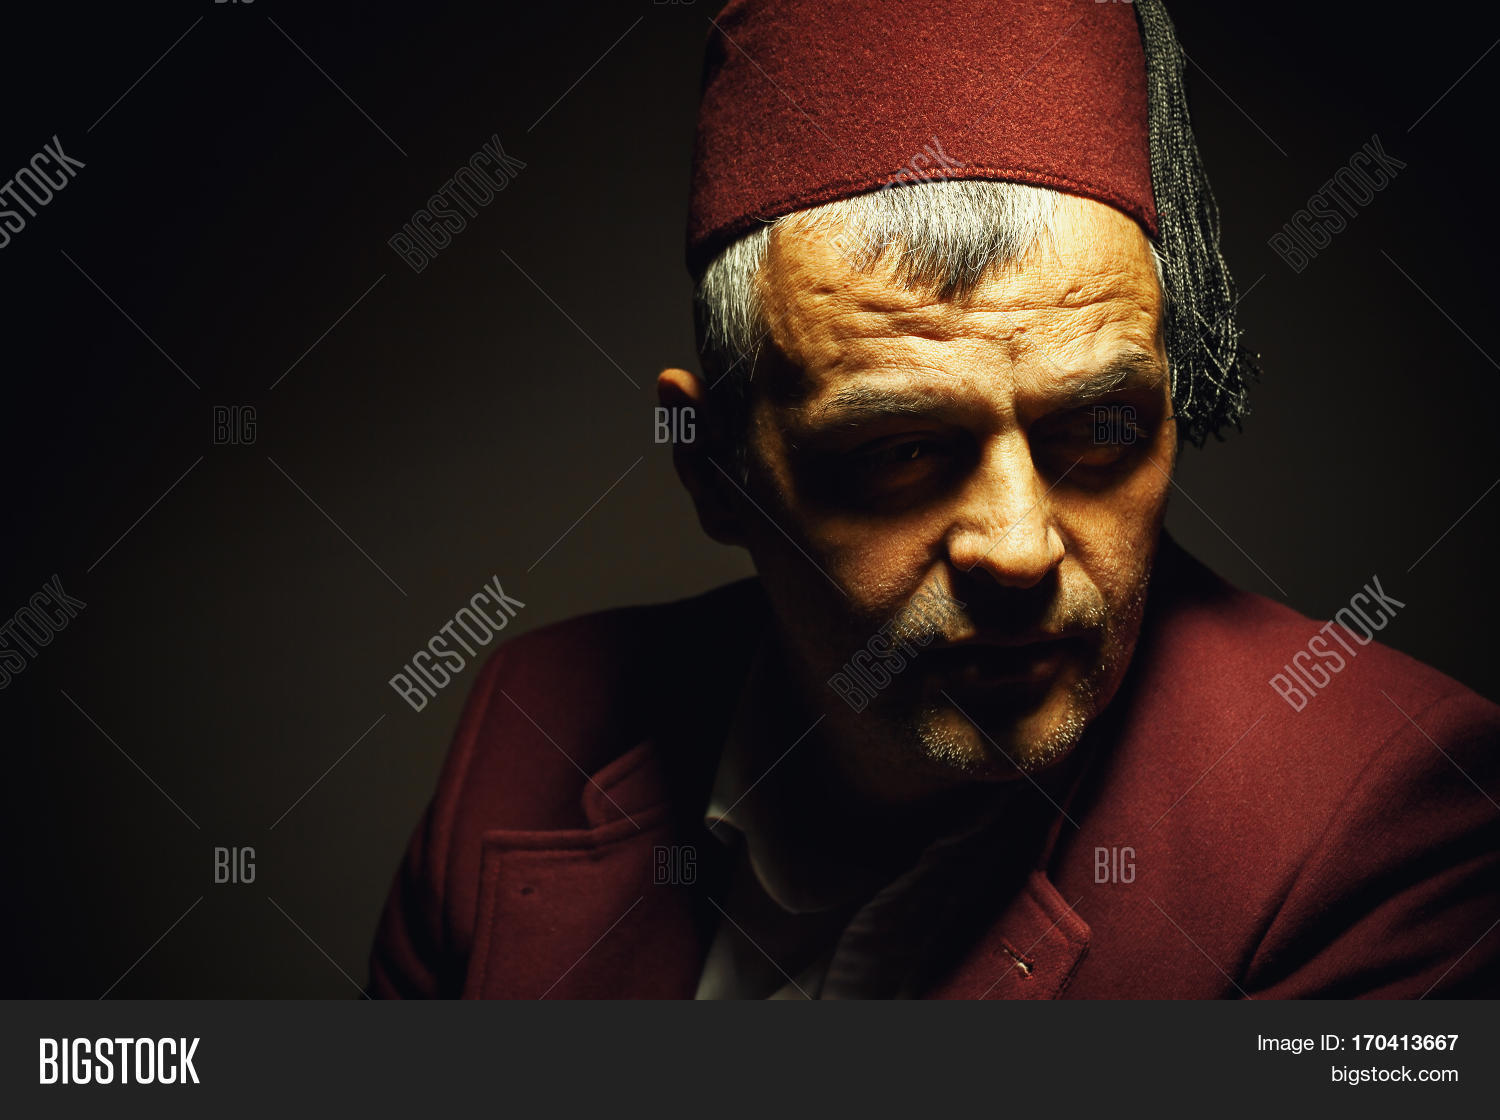 Balkan,Bosnian,Macedonian,Muslim,Serbian,Turkish,act,adult,age,body,cap,closeup,clothes,concept,conceptual,custom,decorative,dressing,expression,eyes,facial,fashion,fez,folk,folklore,hat,head,hear,heritage,life,lifestyle,man,middle,object,original,portrait,pose,red,shoulders,still,studio,tapan,tarboosh,traditional,unique,view